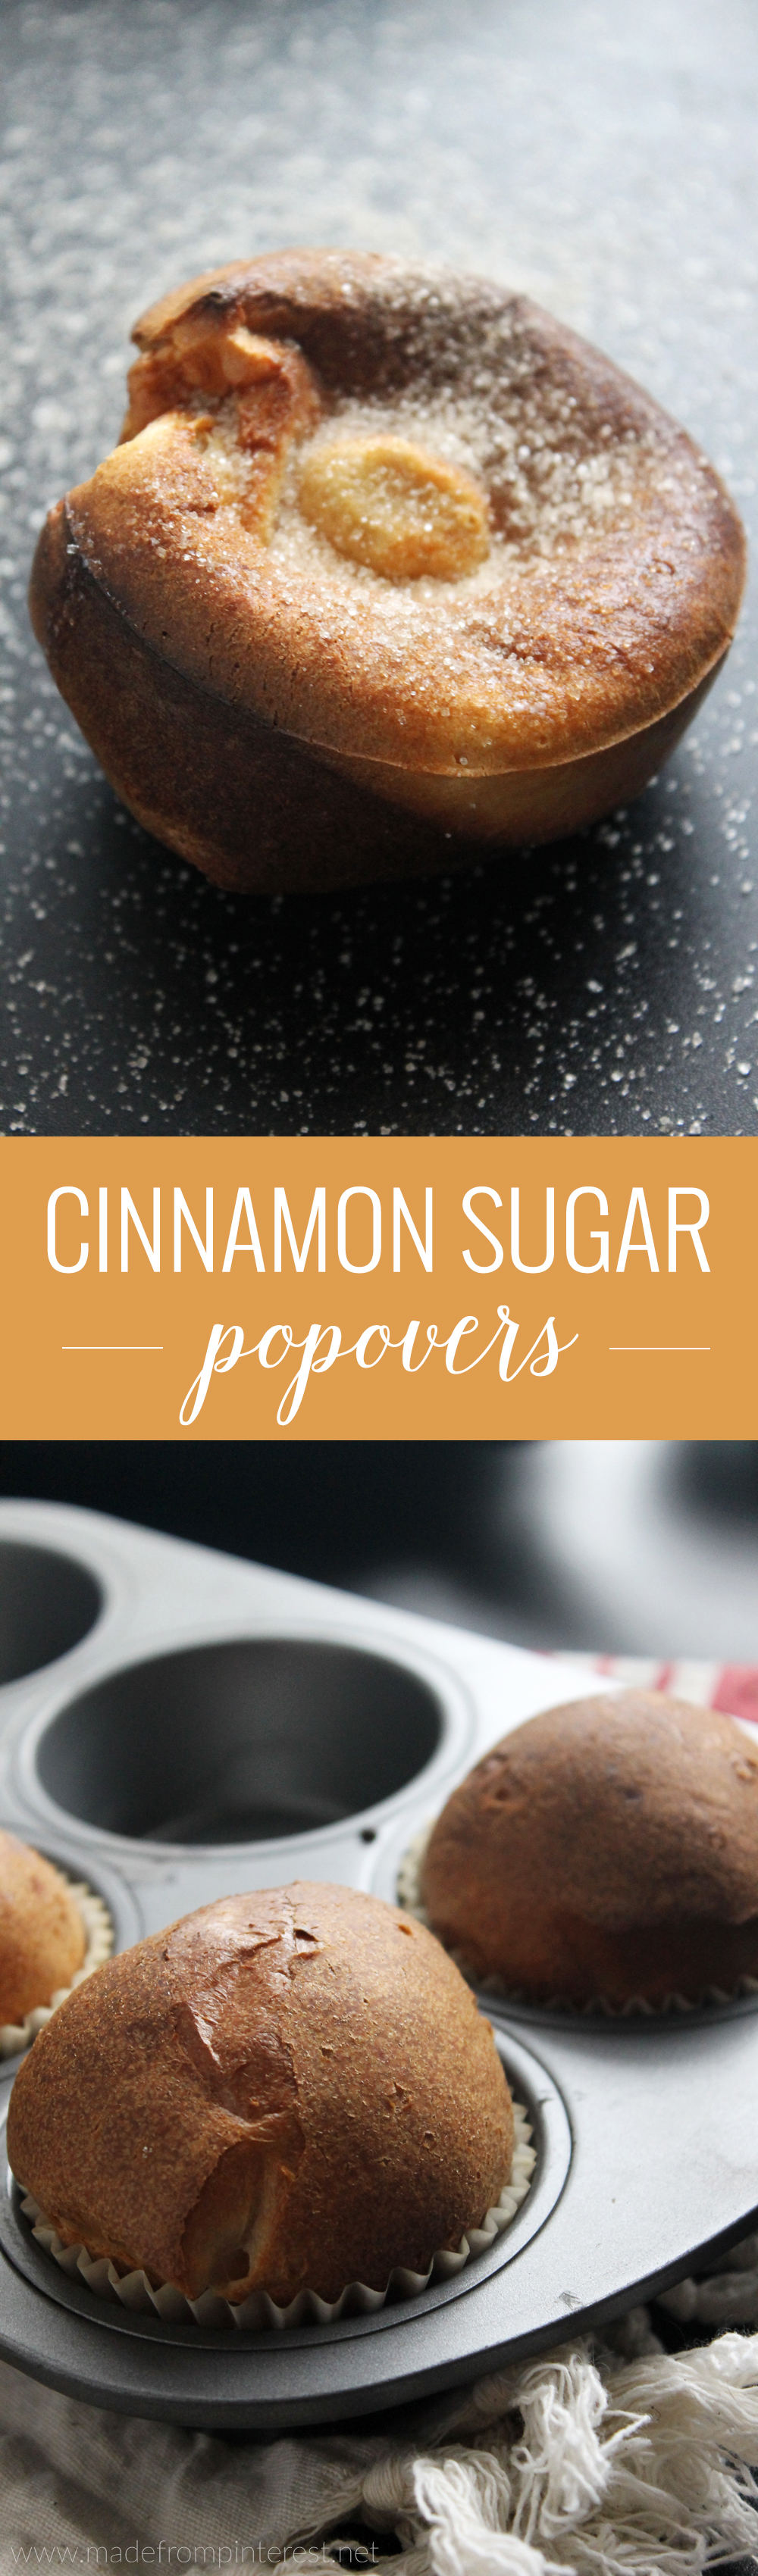 These easy-to-make cinnamon sugar popovers are crisp on the outside and light and eggy on the inside! Covered in buttery cinnamon sugar, these popovers make for a perfect fall breakfast or dessert.